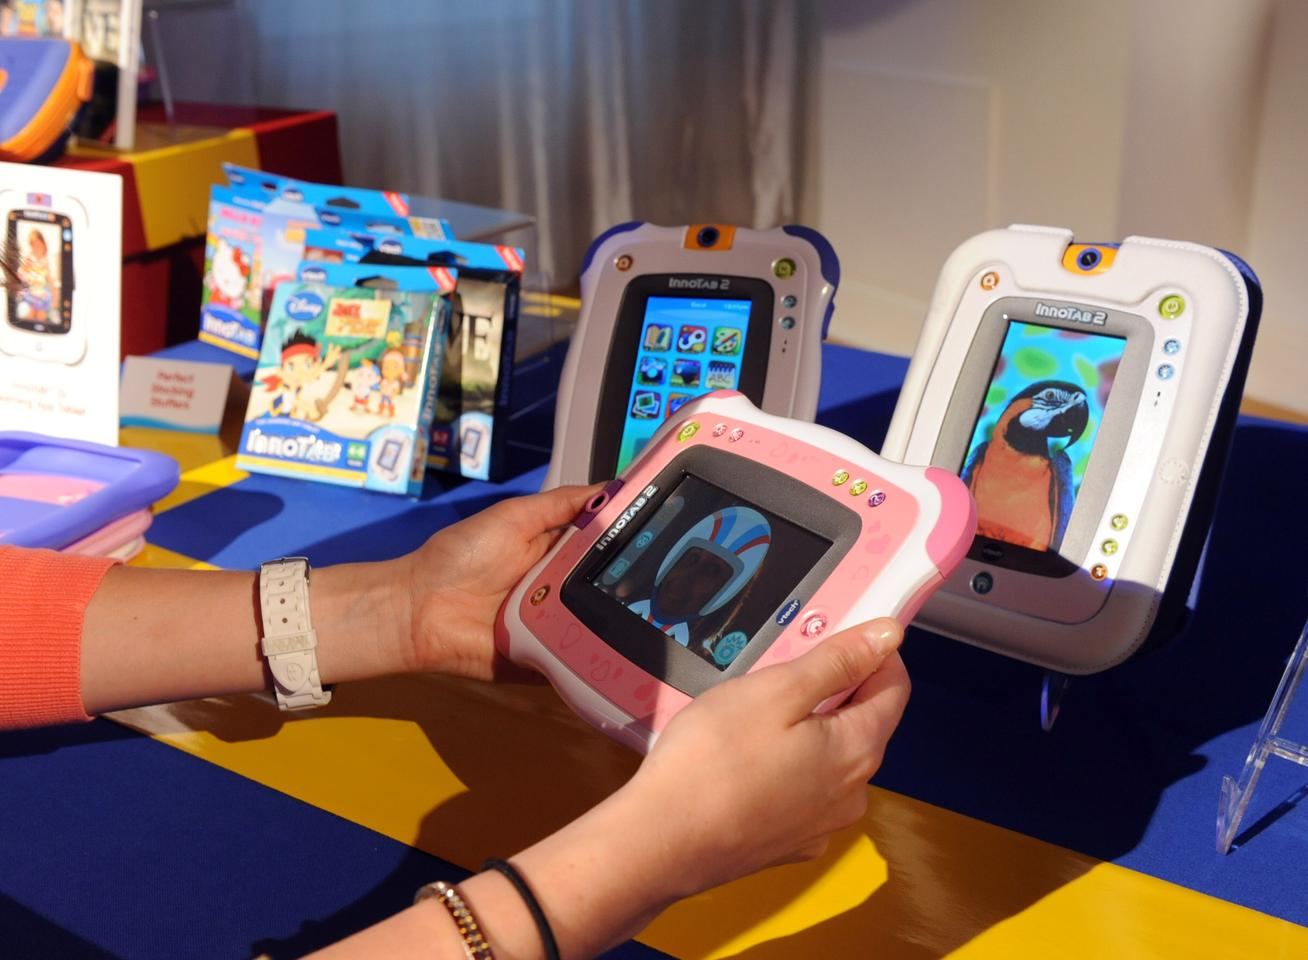 The VTech InnoTab 2 features a five-inch touchscreen, camera, video and MP3 players